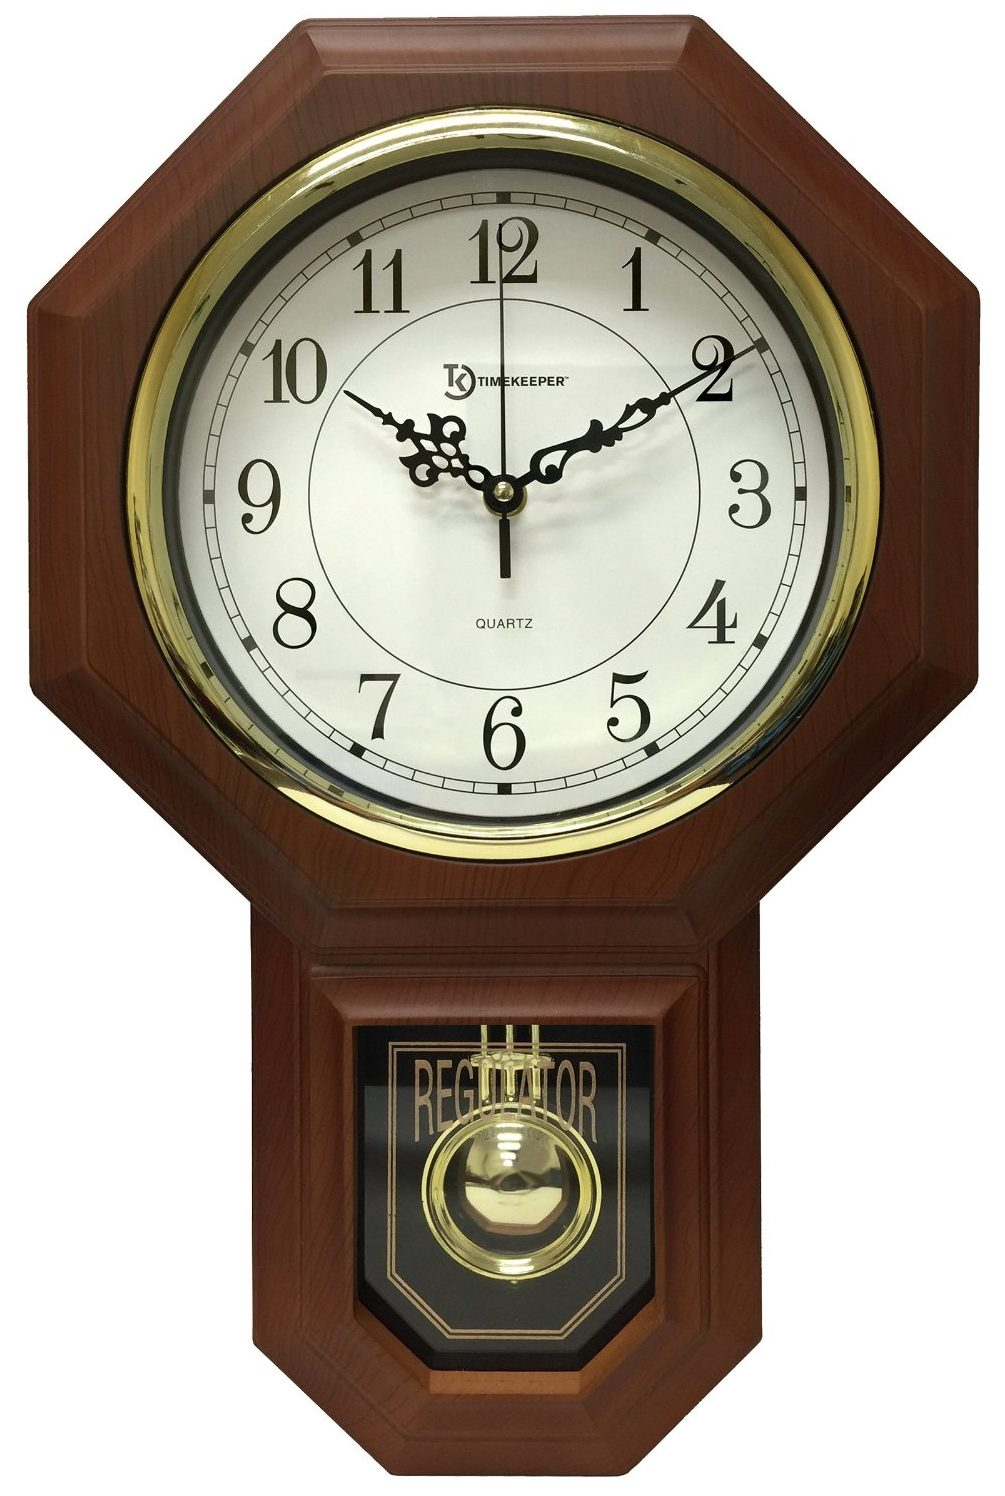 & Wall Clock Best 10 Chiming Wall Clocks On The Market In 2017 Clock Selection